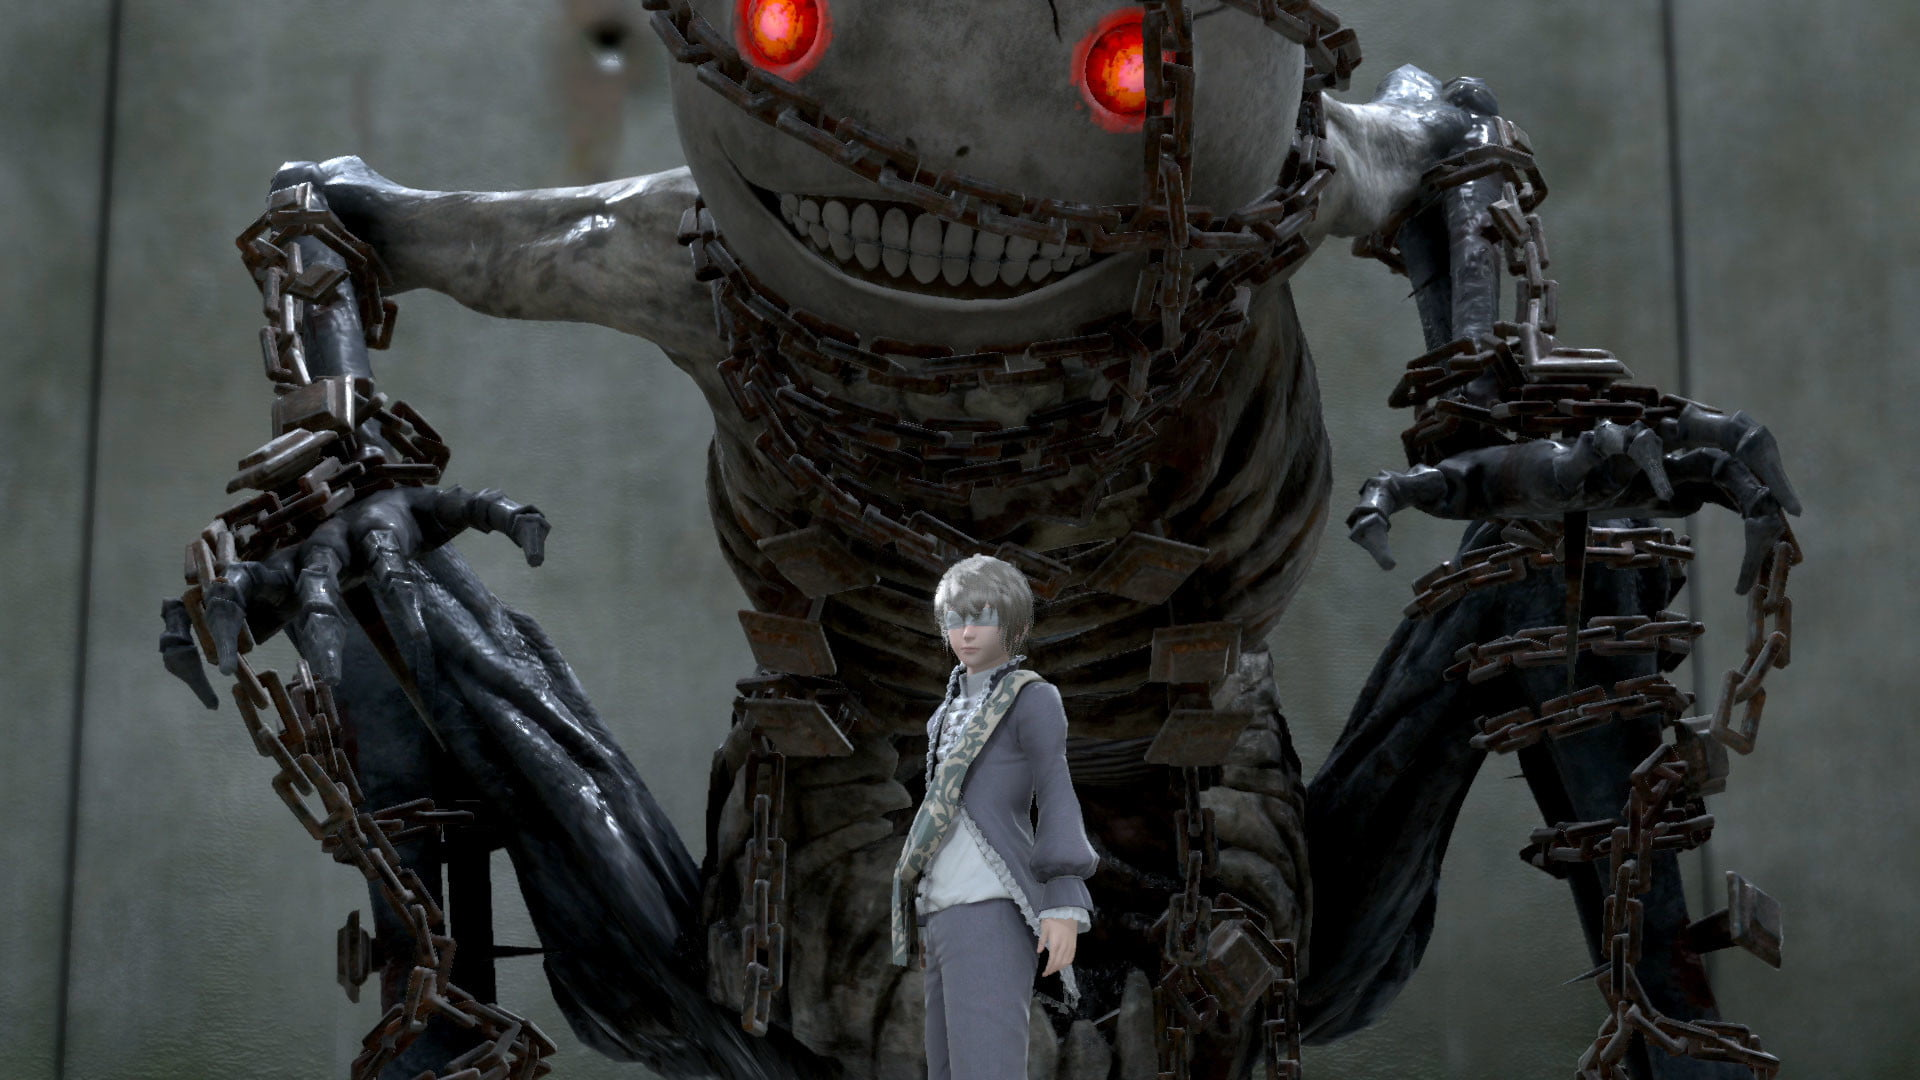 NieR Replicant upgrade review: Still flawed, but more engrossing than ever